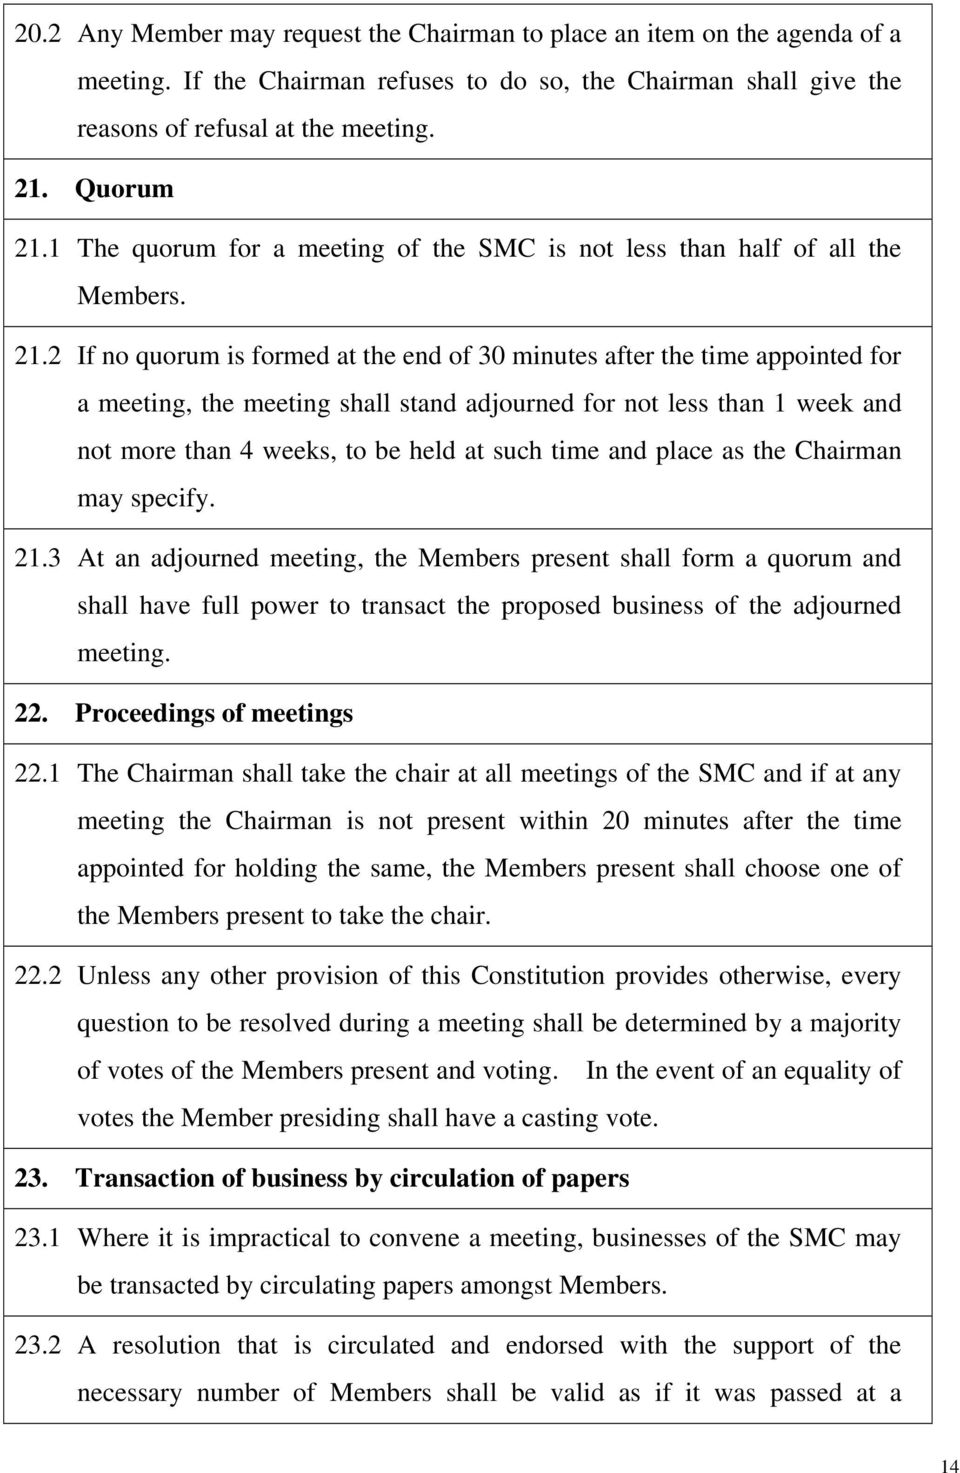 2 If no quorum is formed at the end of 30 minutes after the time appointed for a meeting, the meeting shall stand adjourned for not less than 1 week and not more than 4 weeks, to be held at such time